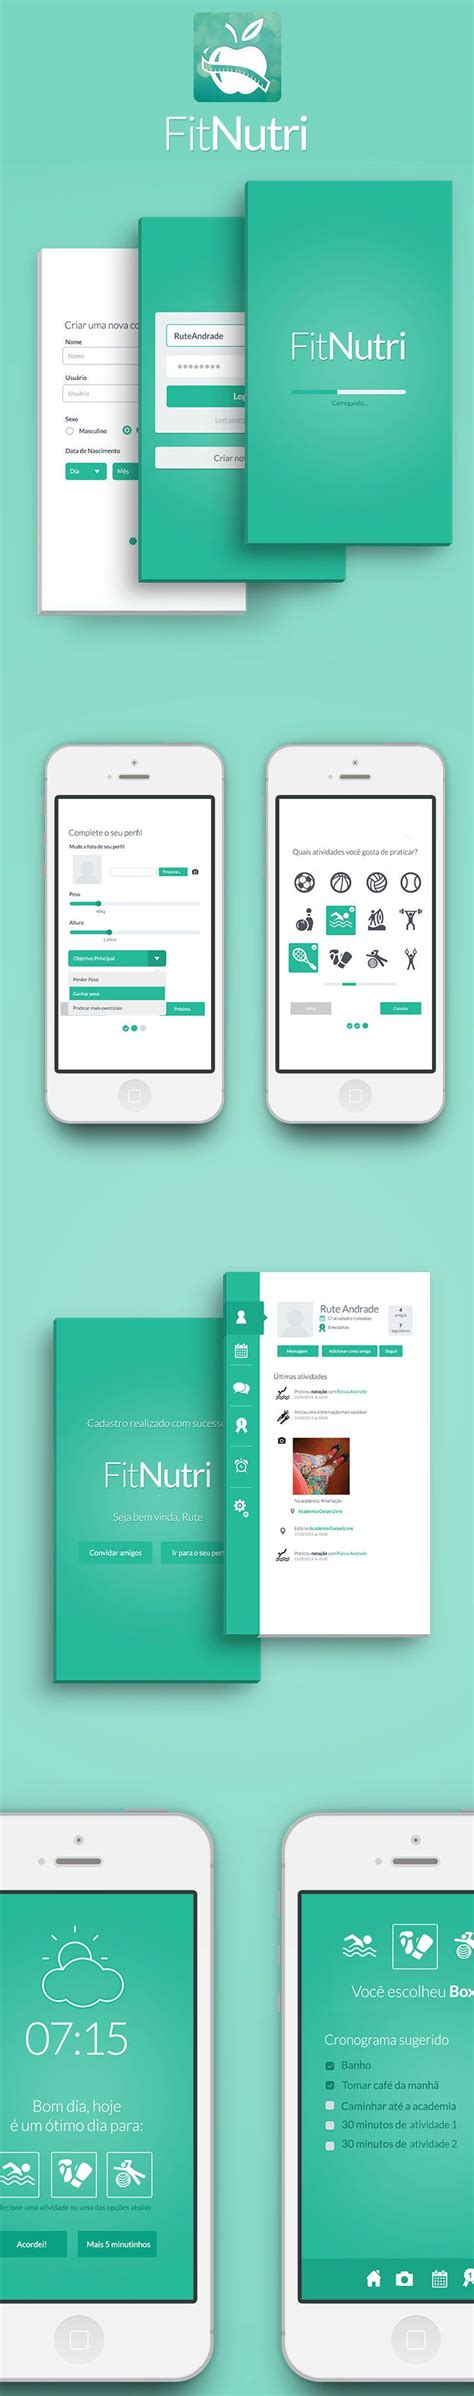 layout design for mobile application 14 best images about mobile app design on pinterest